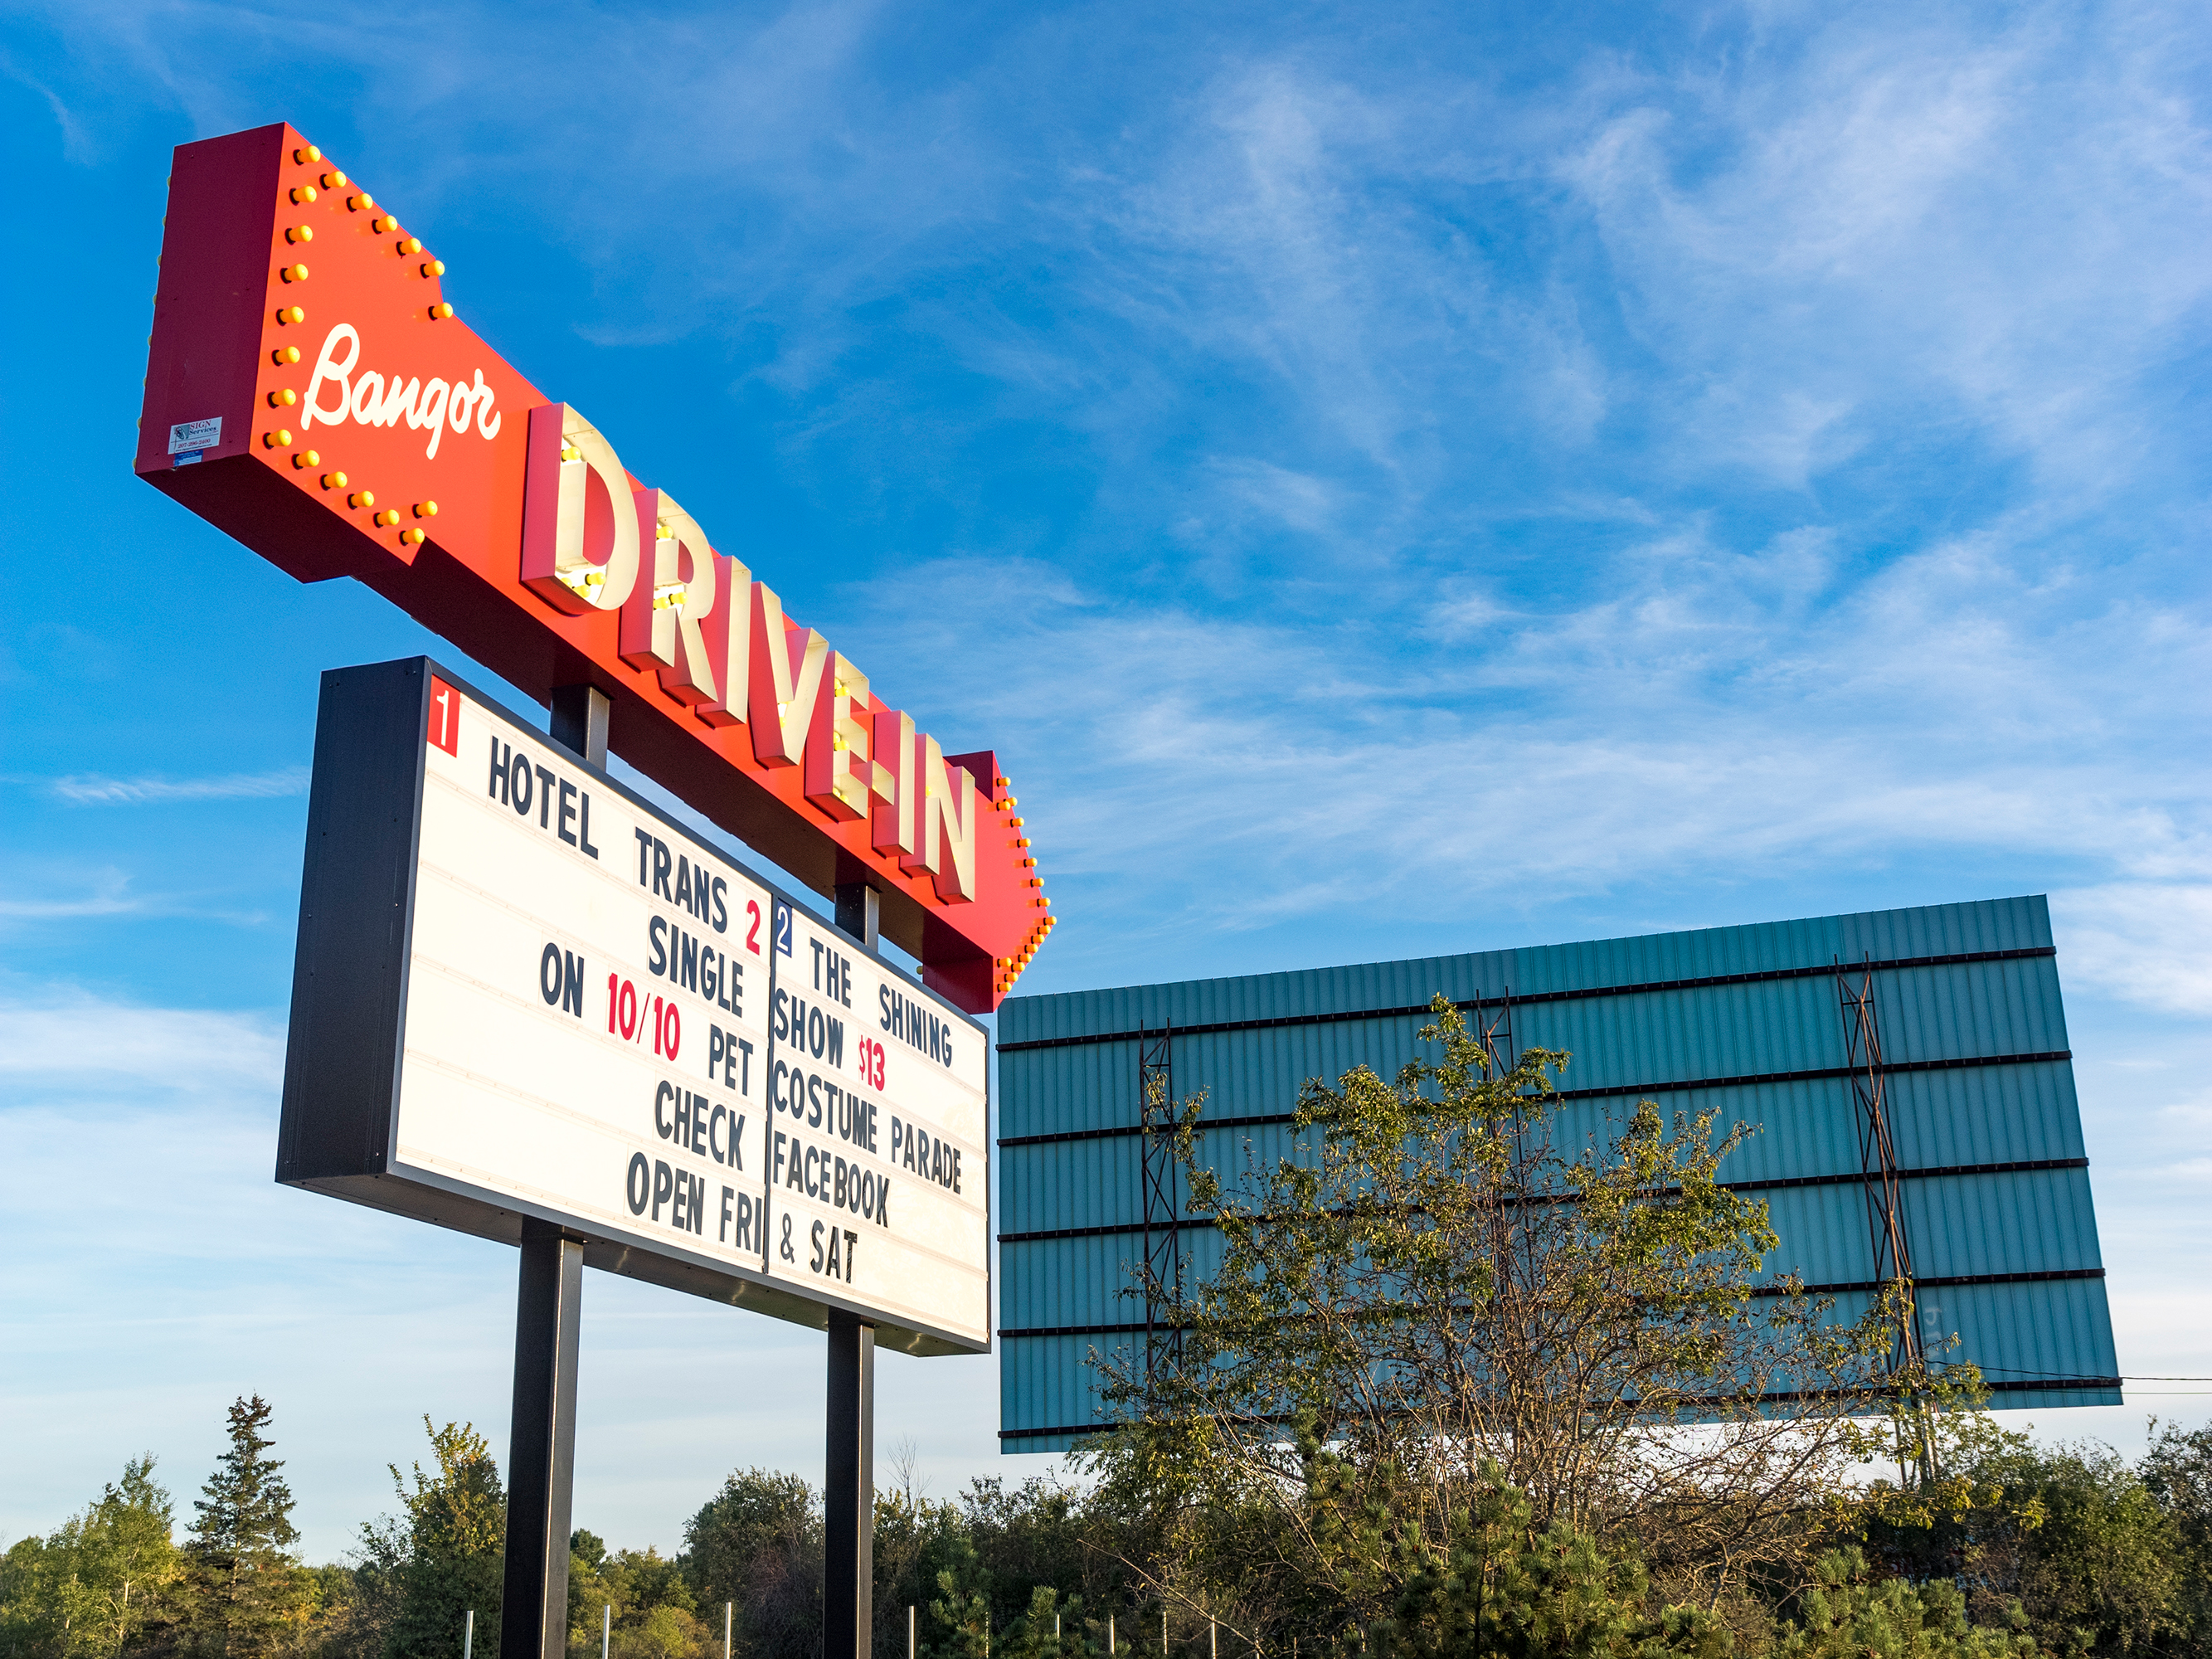 One of the later additions to the state, the Bangor Drive-In opened in June of 1950, but it boasted enough room for a whopping 900 cars. While it closed in the 1980s, a Boston-based culinary group reopened it in July 2015 to much fanfare with a full-service snack bar selling state classics like whoopie pies. It's central location allows Mainers or tourists in Vacationland to catch a flick in the summer without driving down south to other areas.